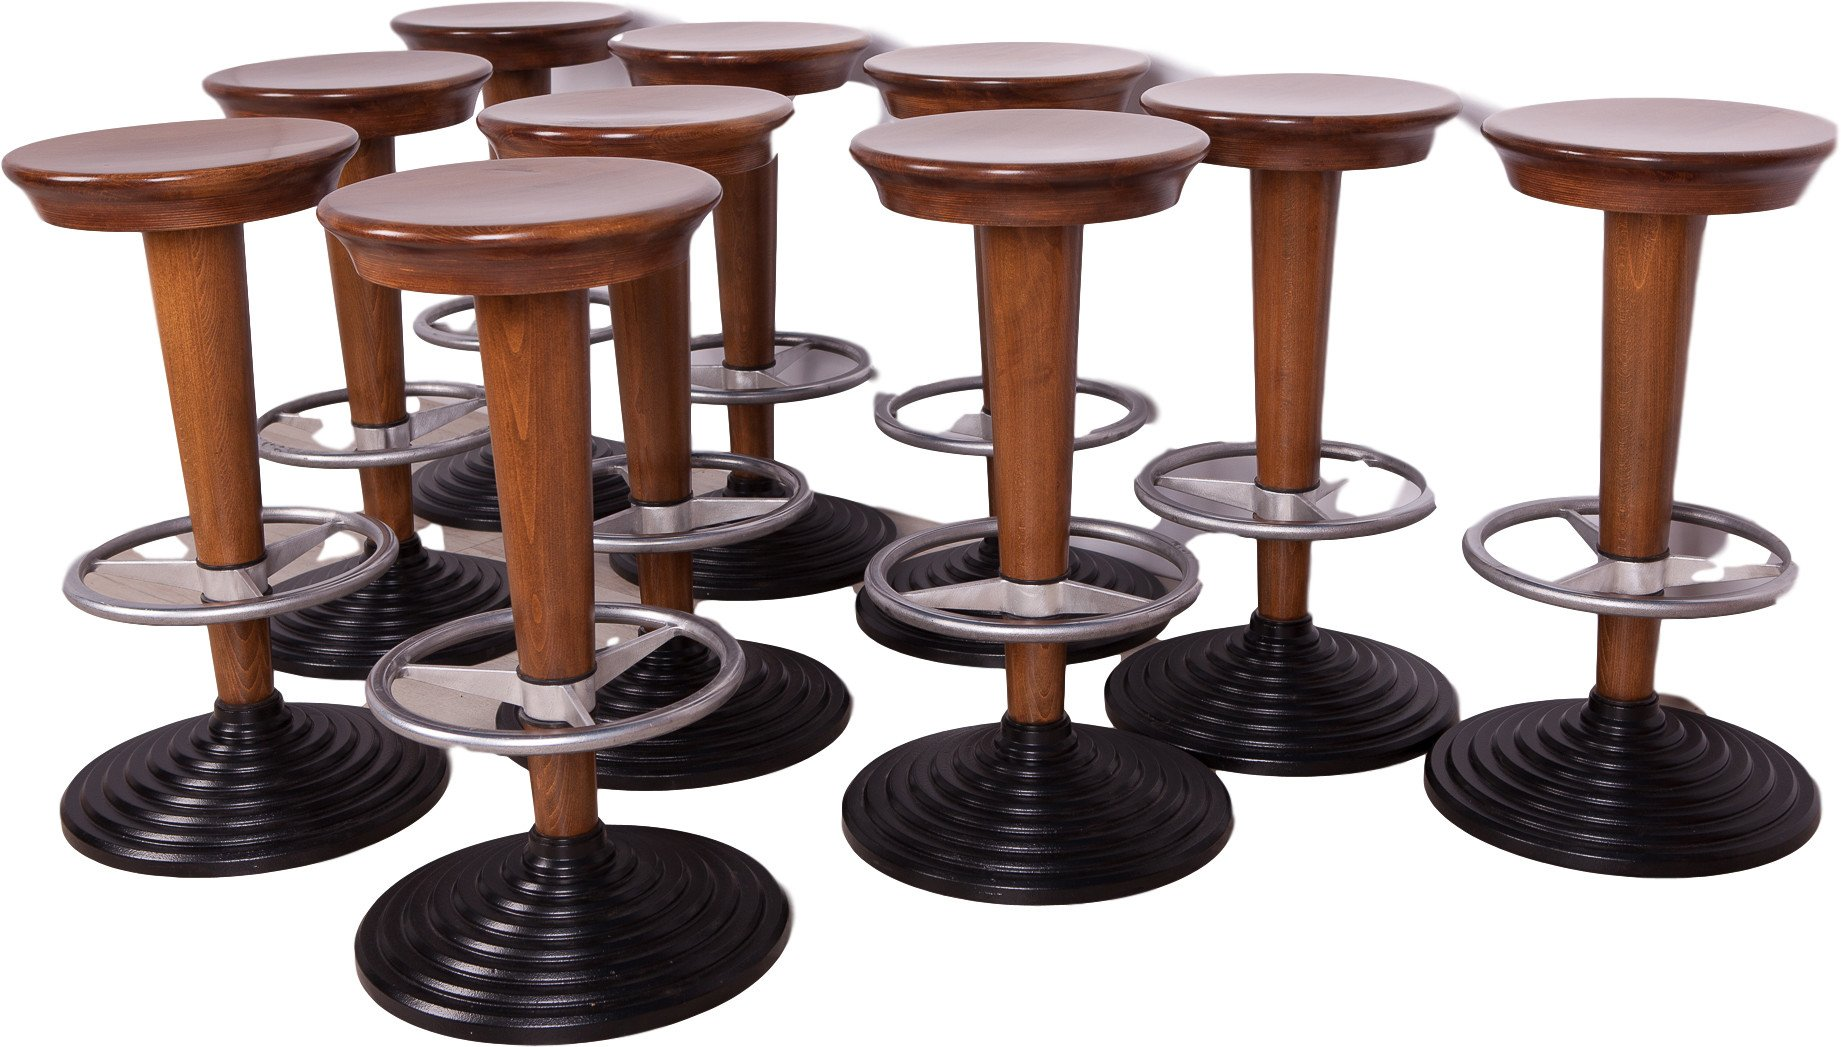 Set of Ten Bar Stools, Poland, 1950s